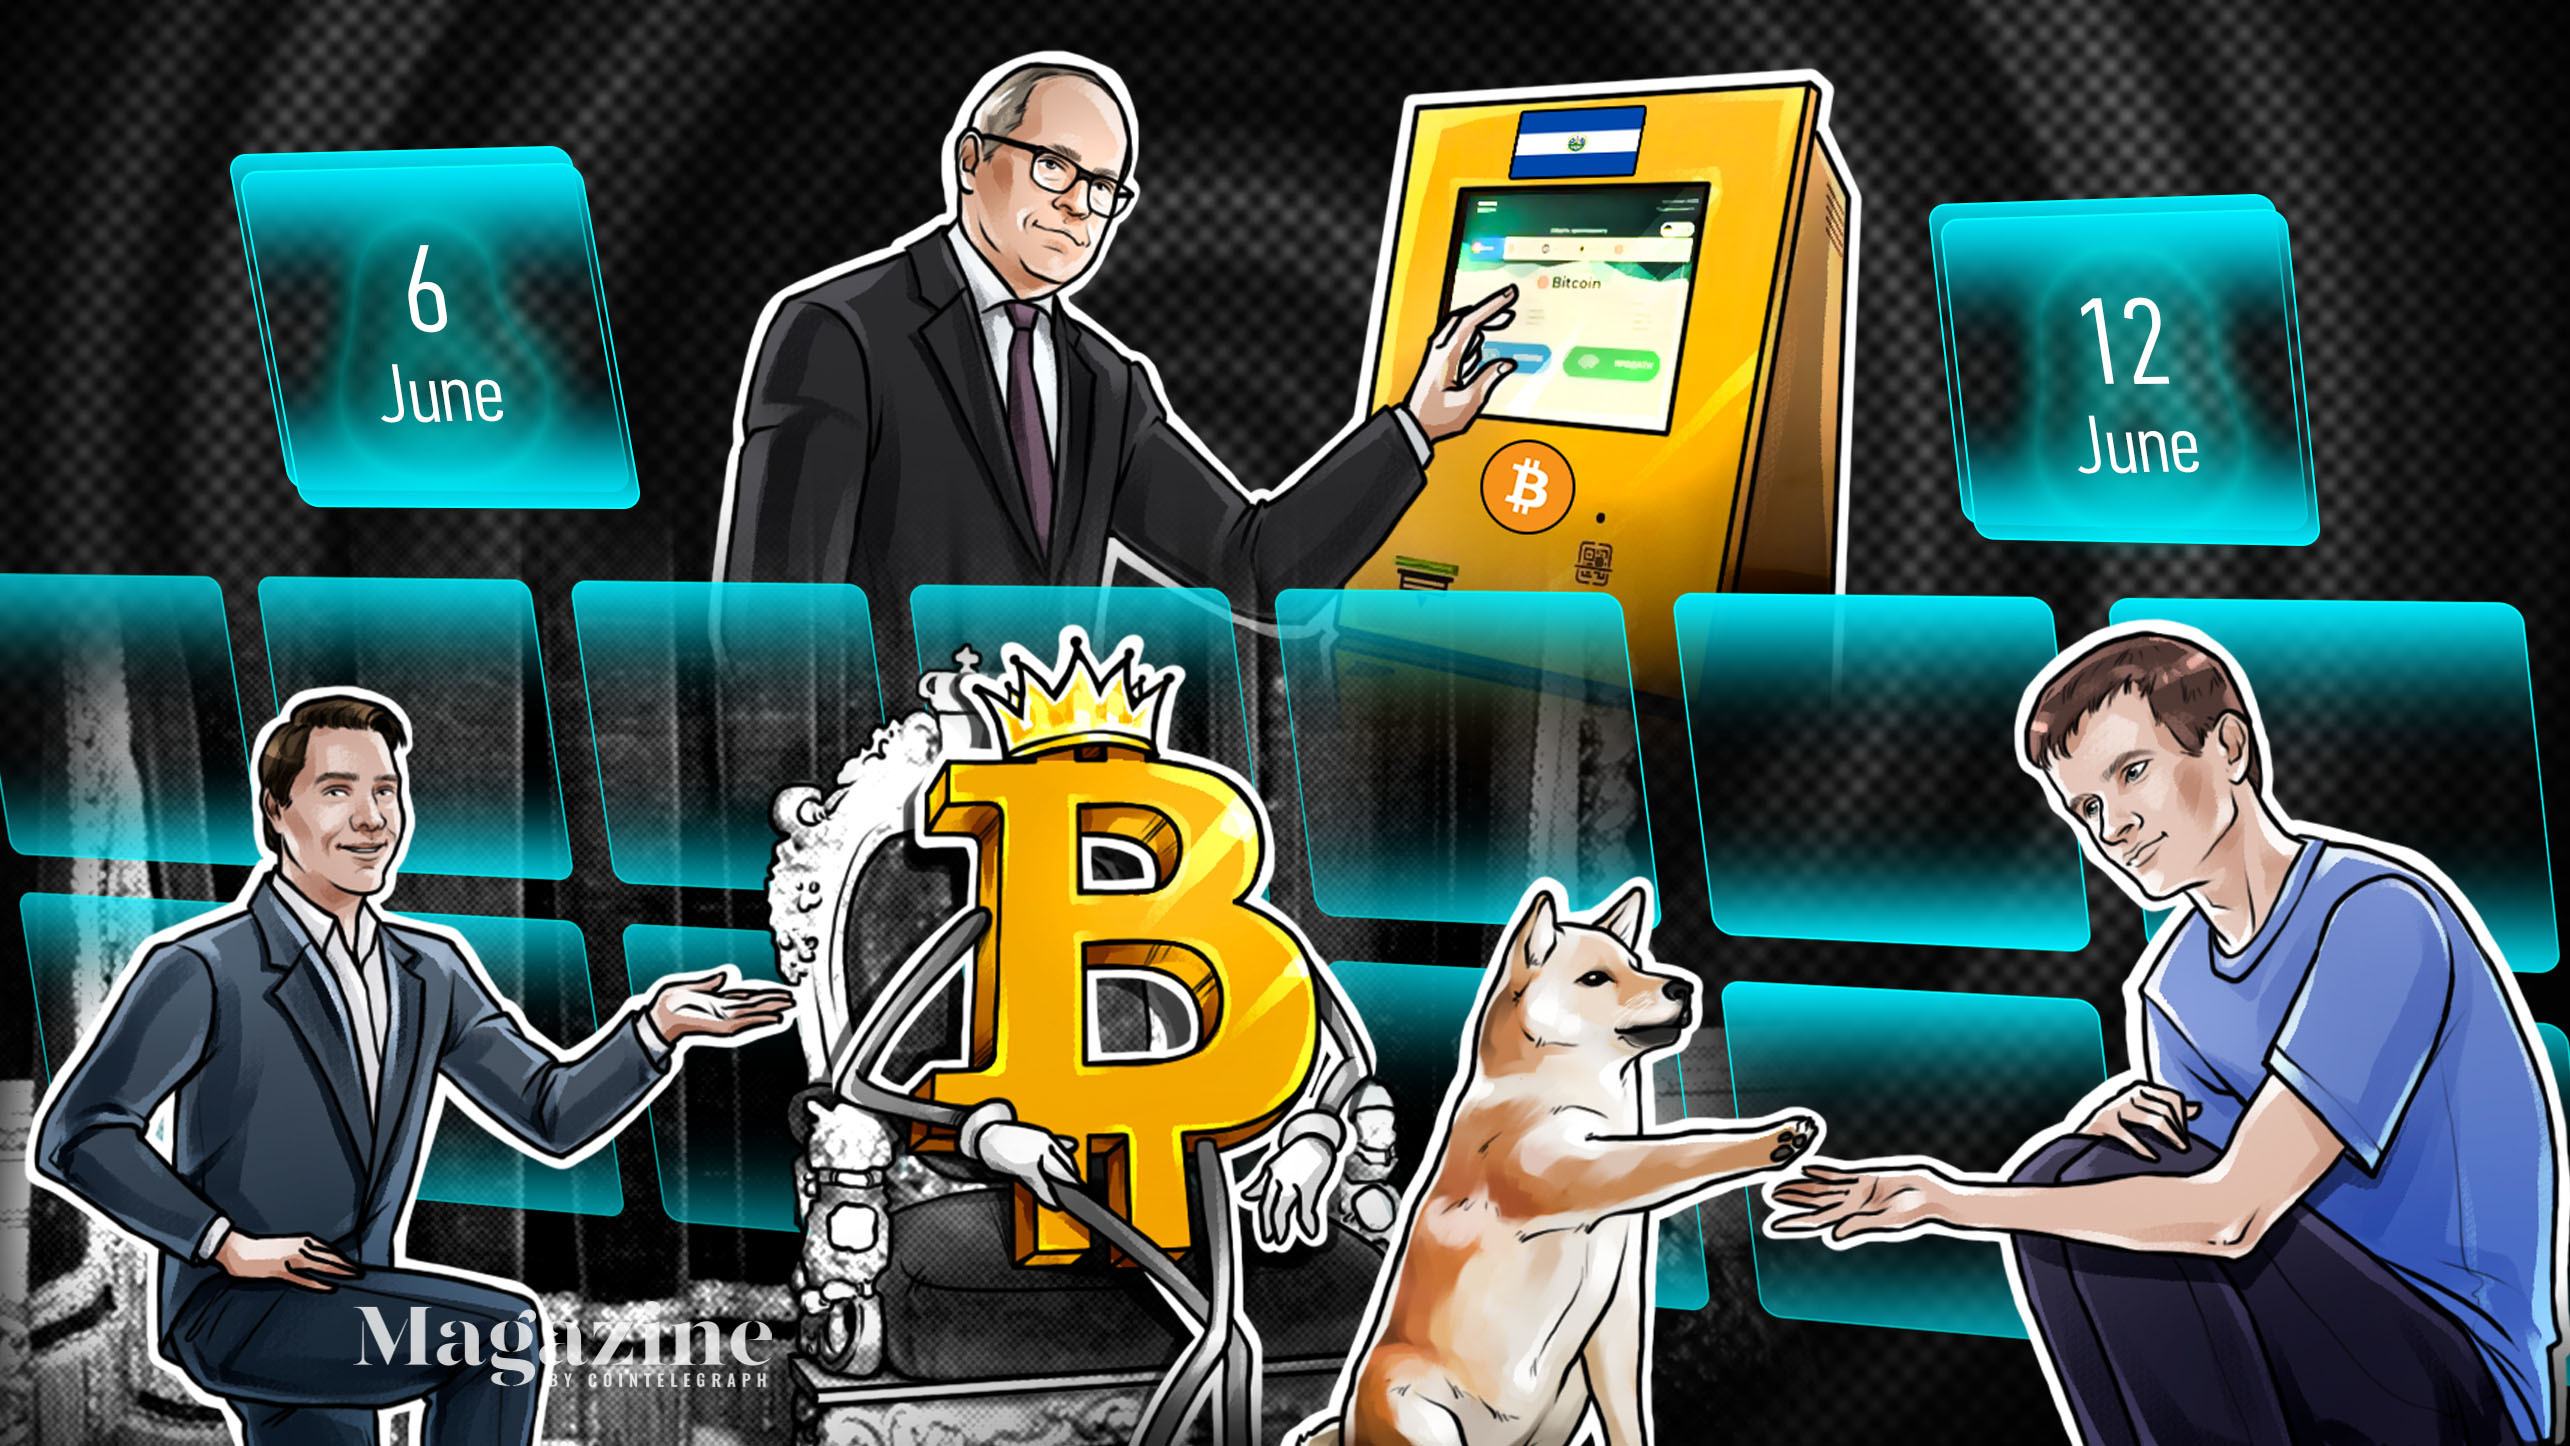 A new milestone for Bitcoin, COVID hits conference, Buterin's DOGE payday